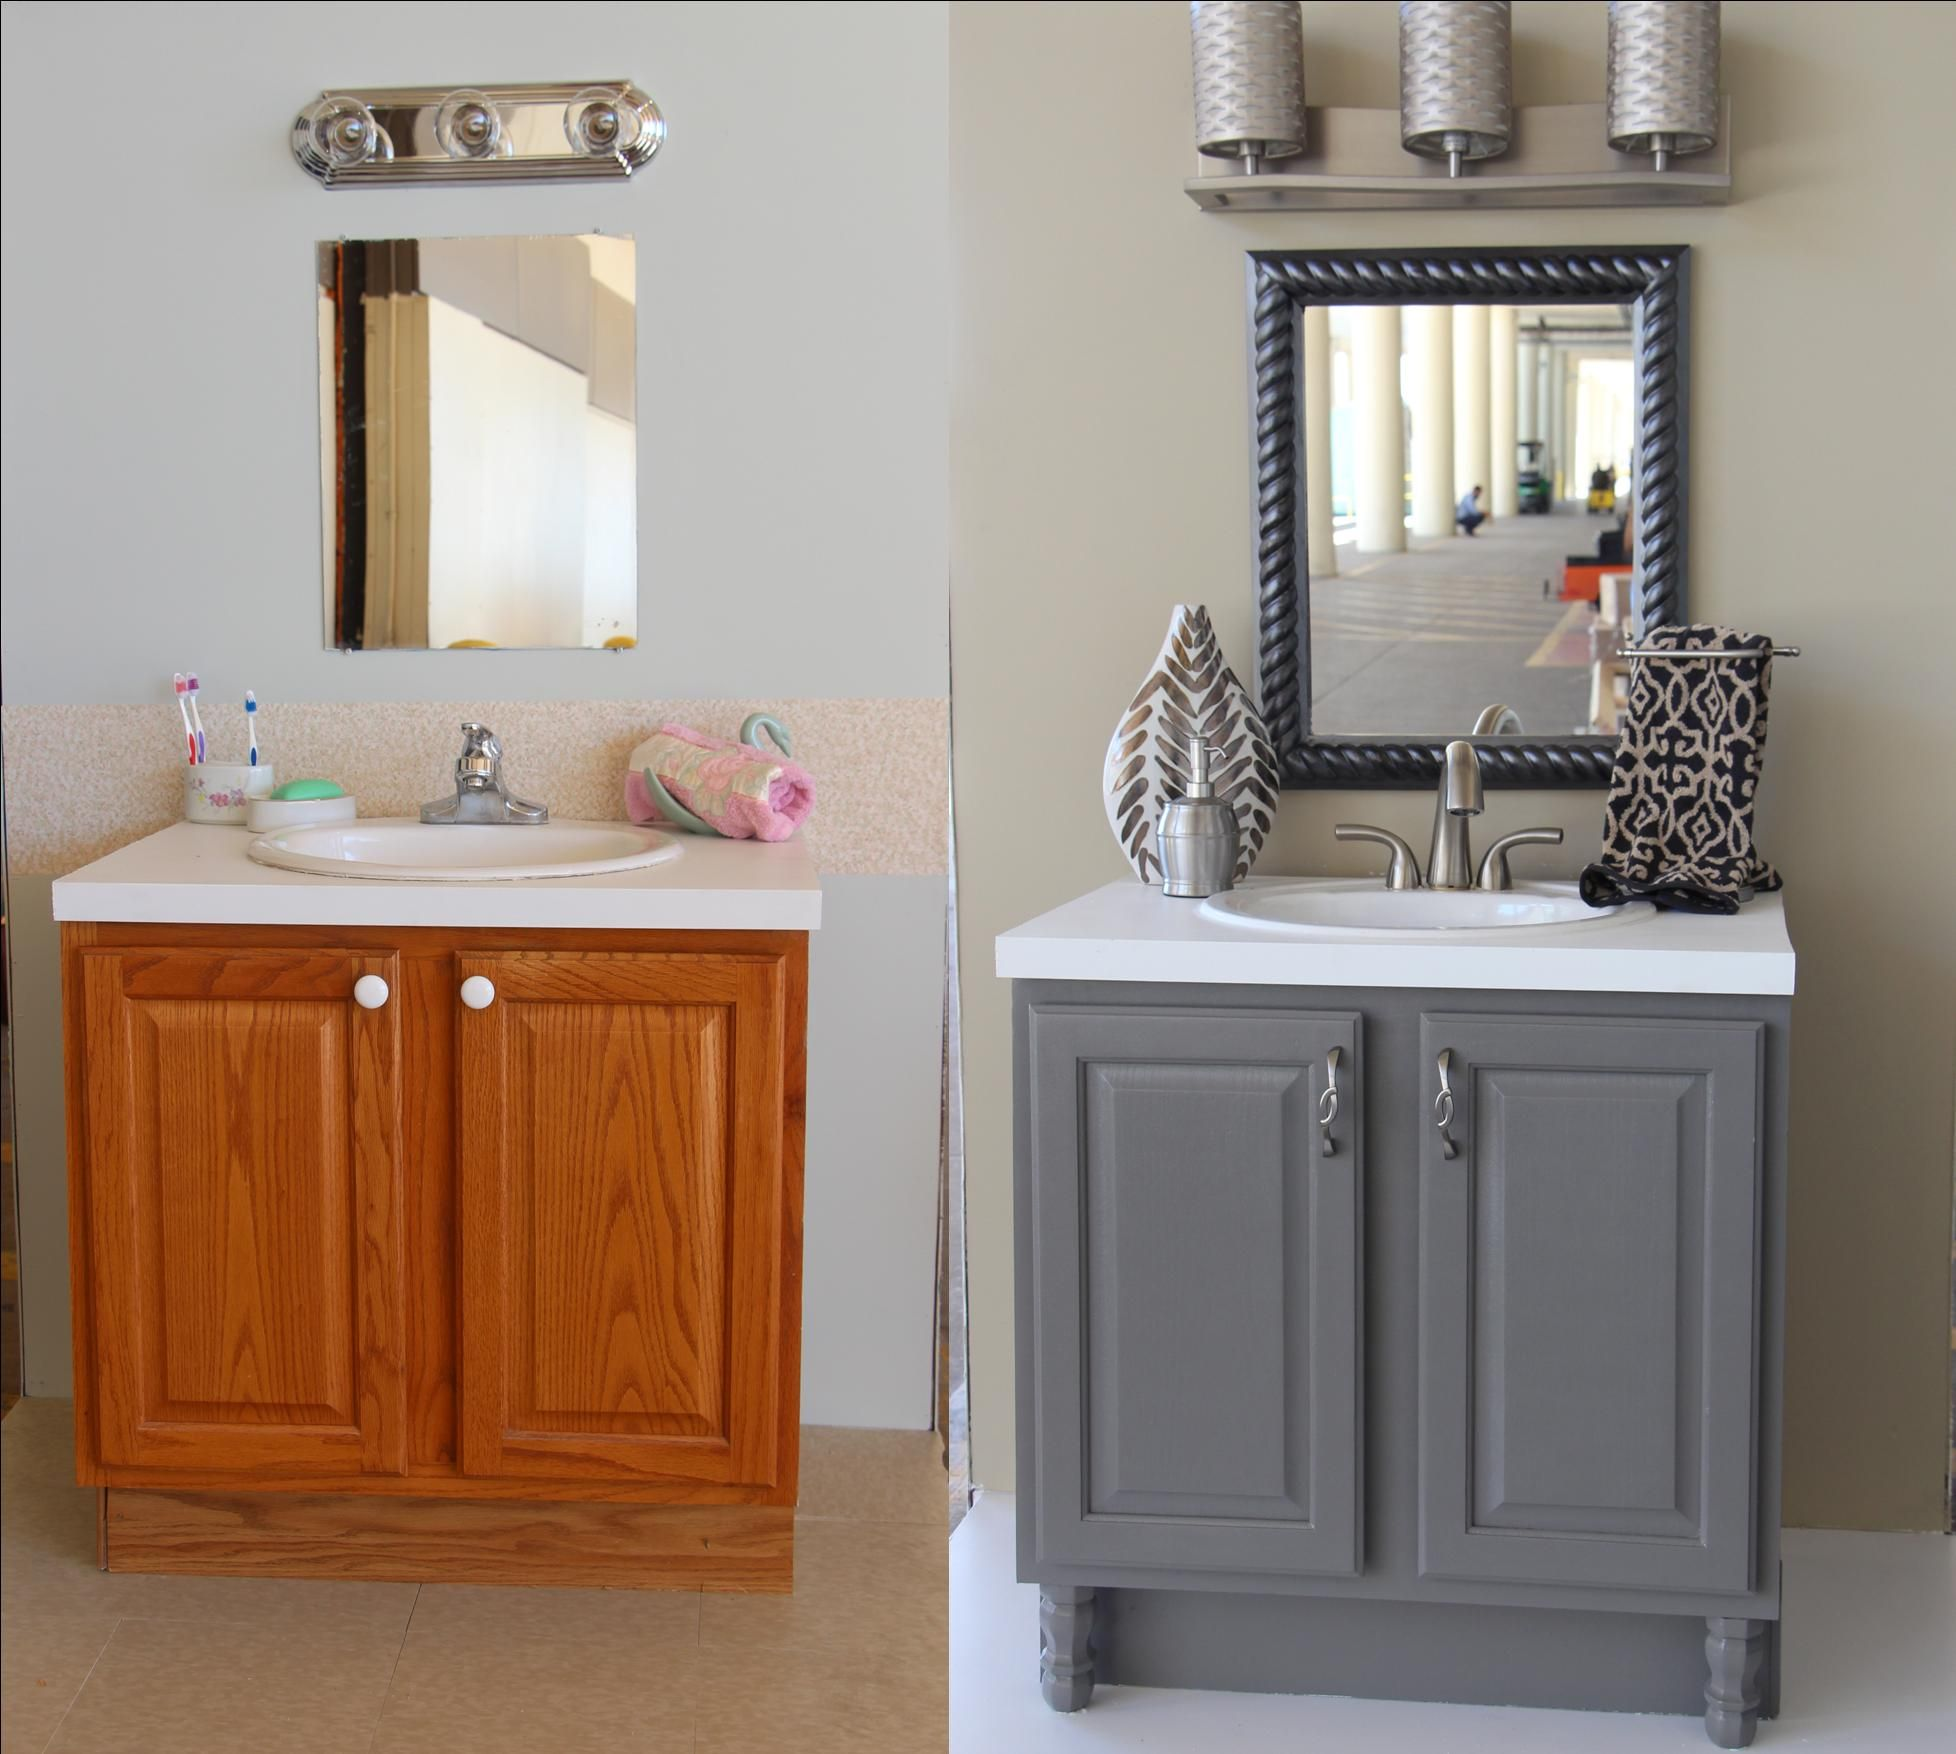 Bathroom Updates You Can Do This Weekend Bathroom Ideas - Small bathroom sinks with cabinet for bathroom decor ideas